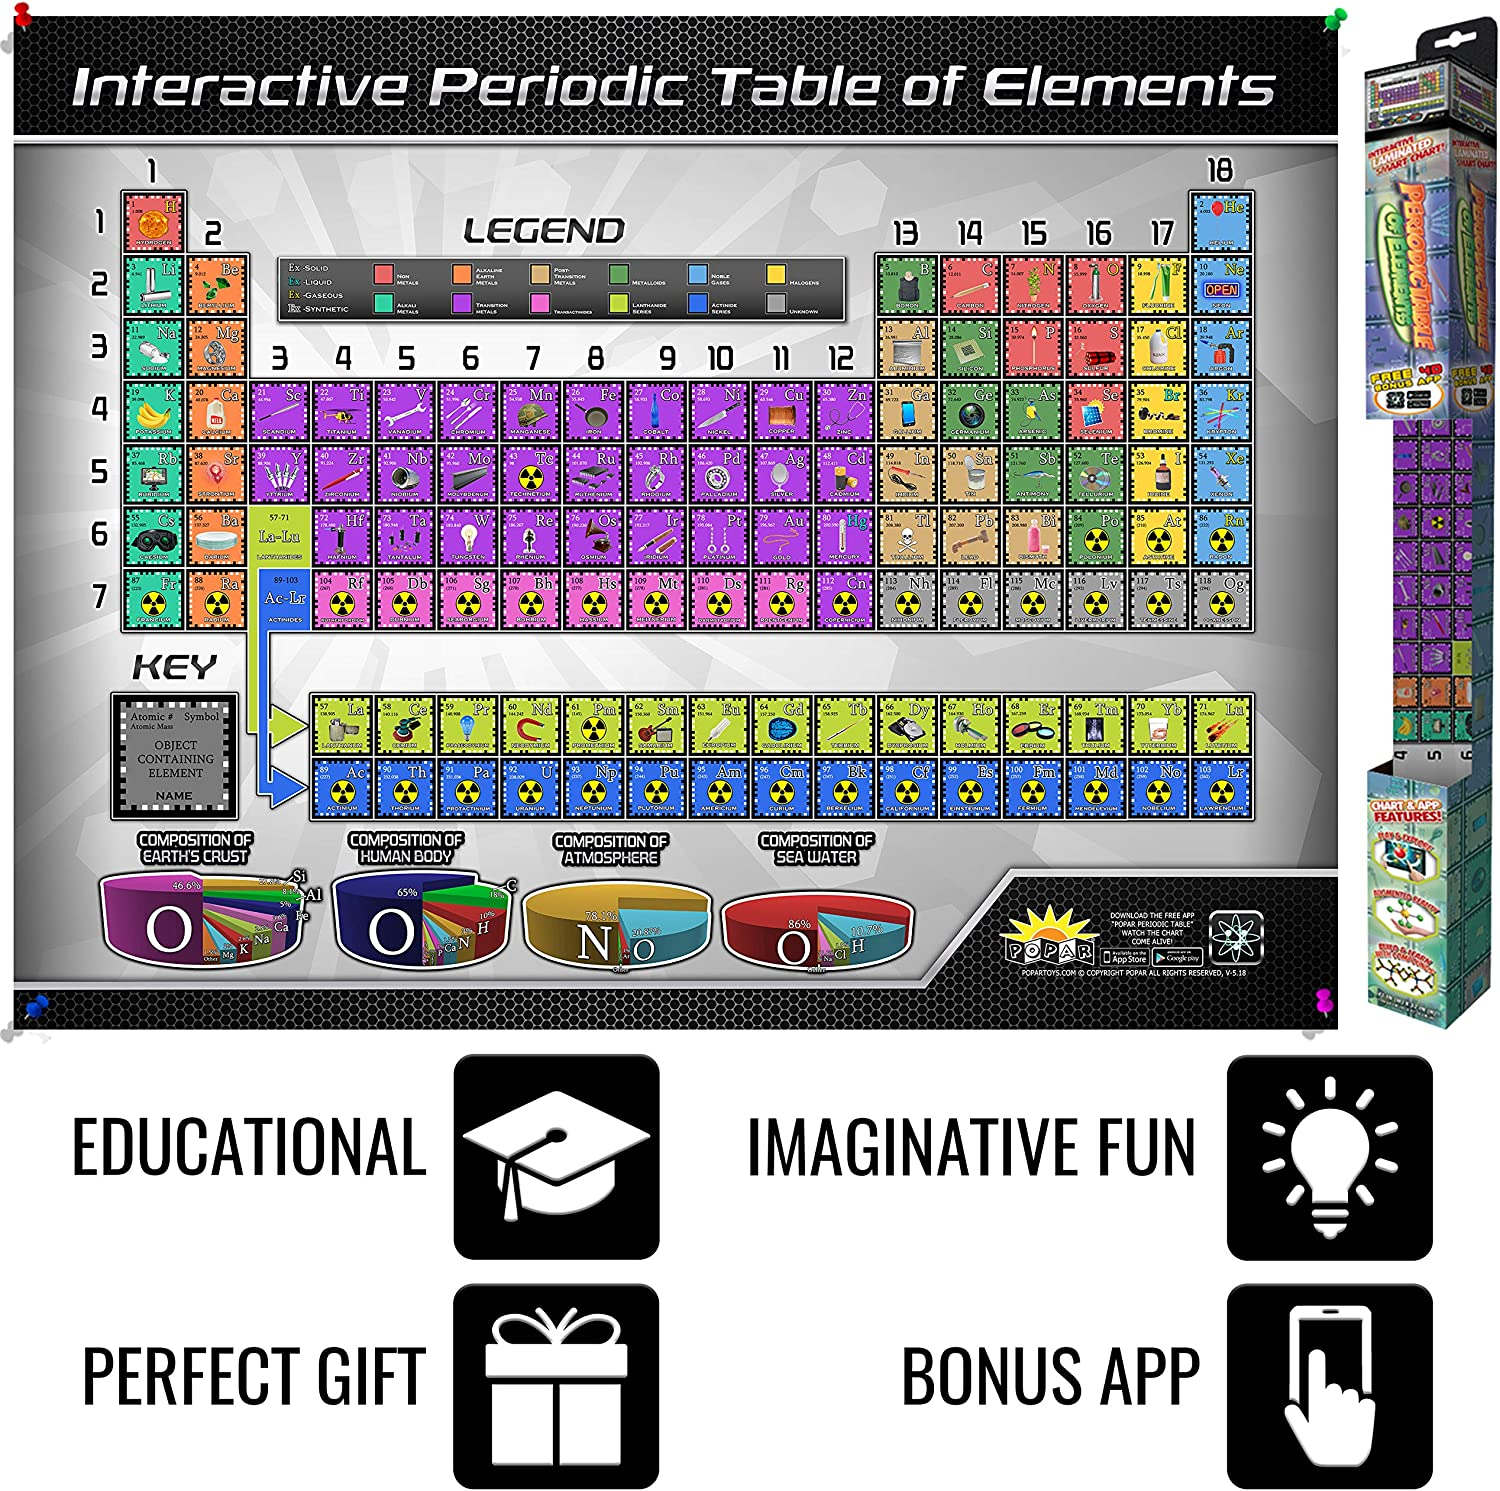 9 Included Augmented Reality Education App 12 8 10 11 6 STEM Toy Learning for Boys and Girls Aged 5 7 Interactive Laminated Periodic Table of Elements Chart for Kids